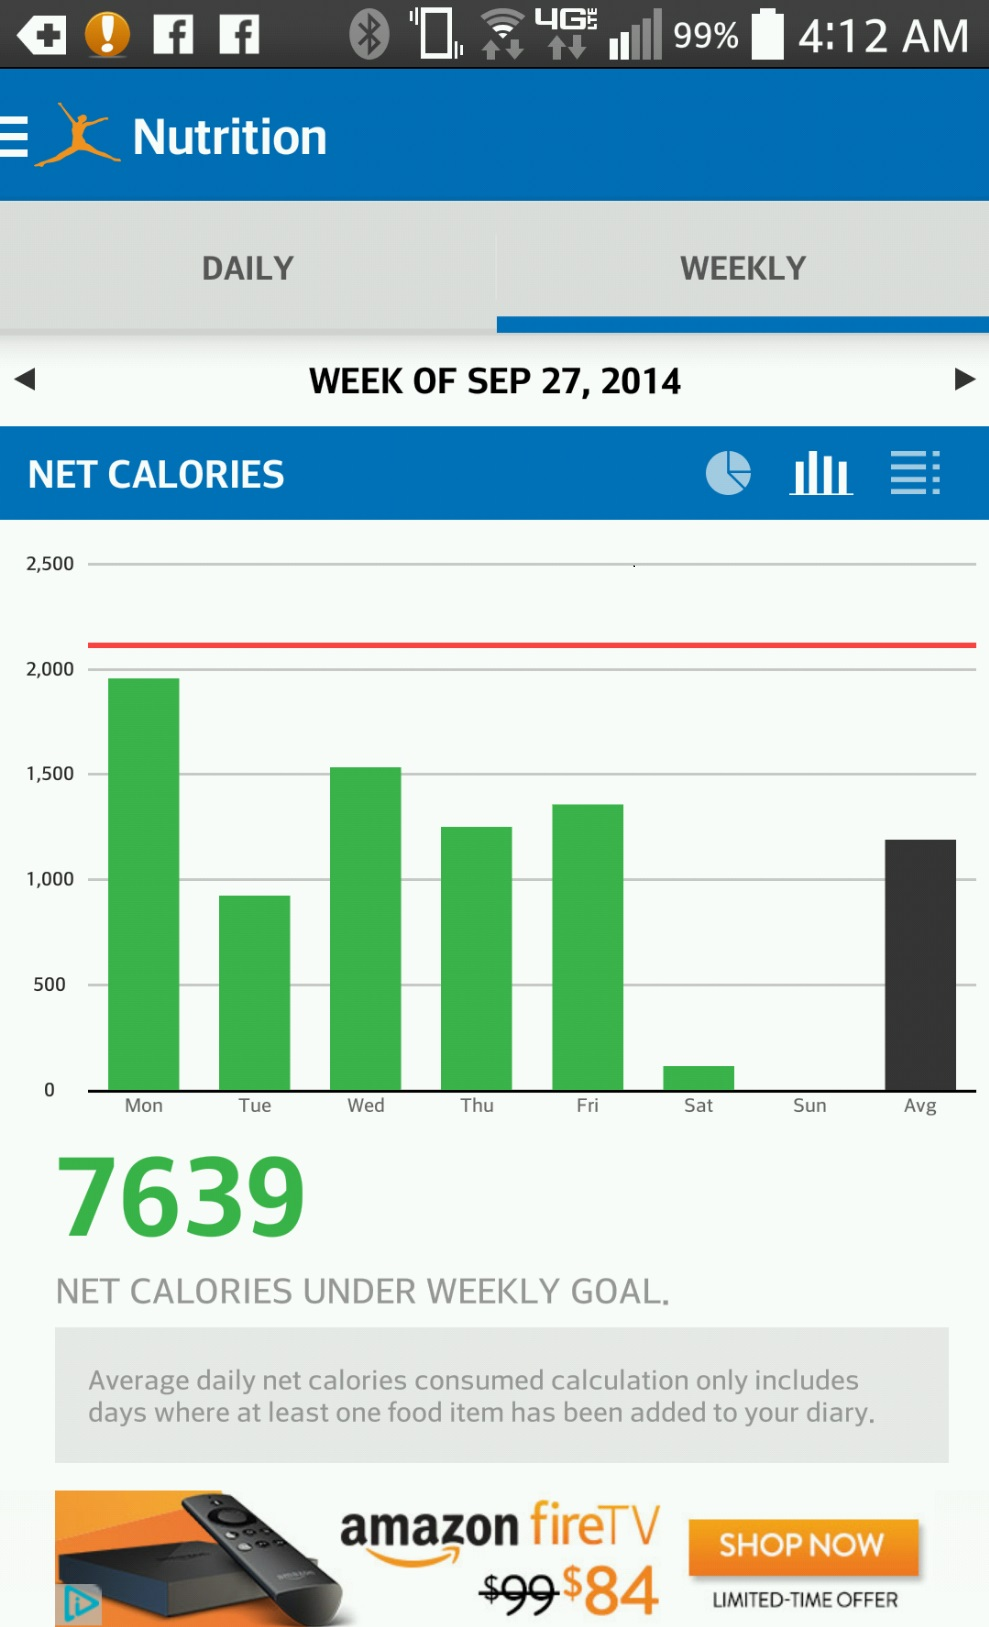 MFP takes into account the activity from my Fitbit and Runkeeper to come up with these adjusted calorie numbers.